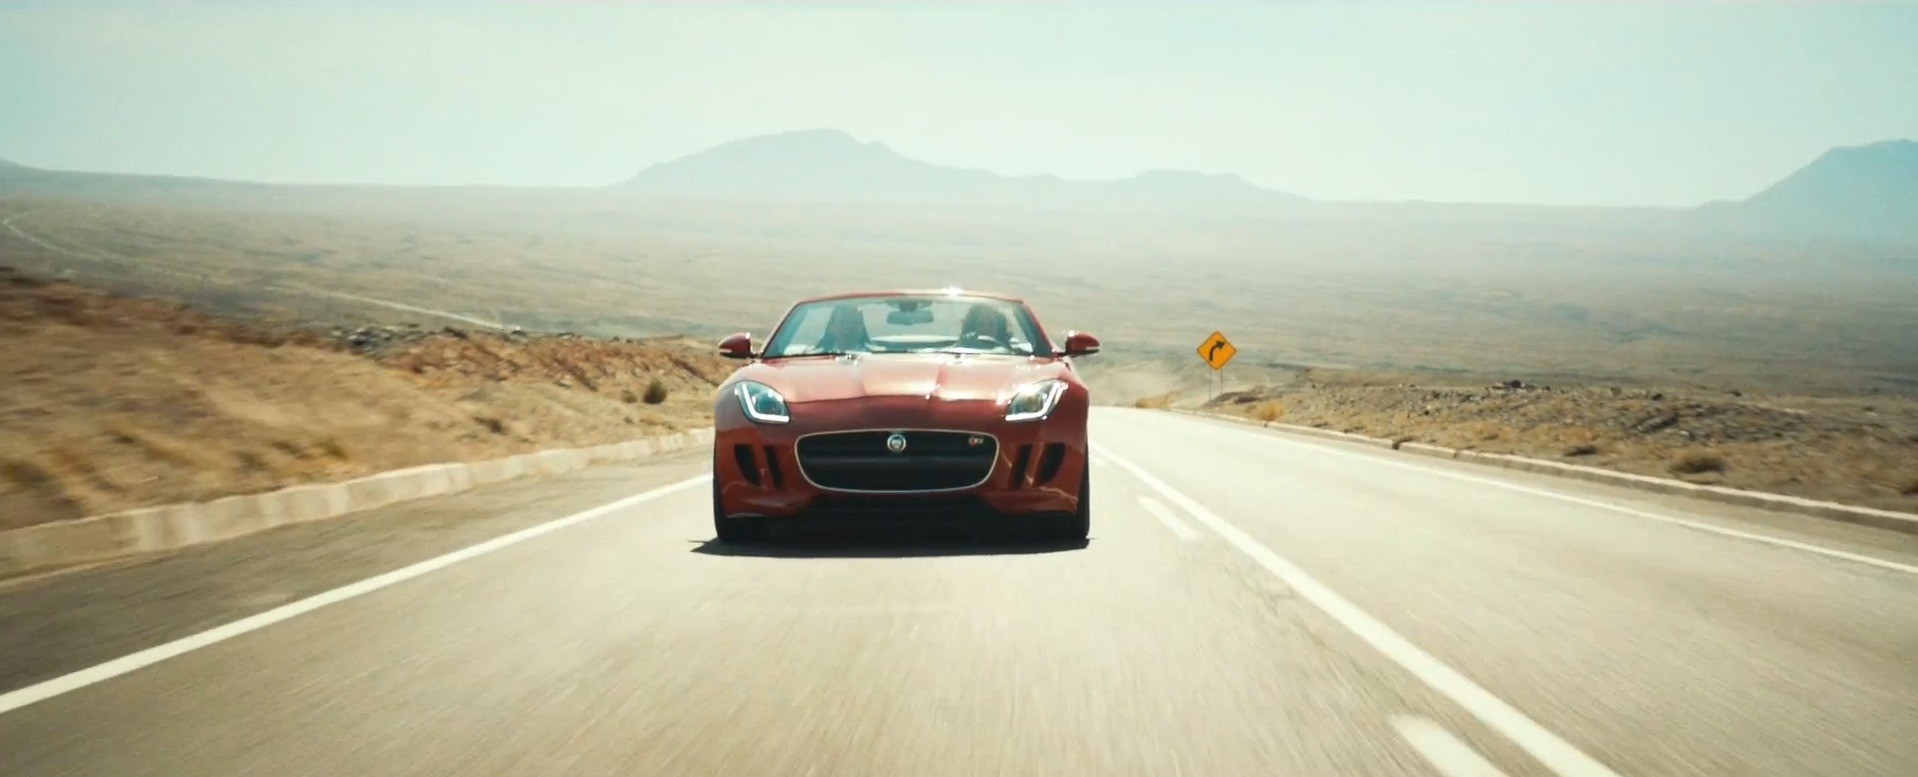 Jaguar F-TYPE Kurzfilm (Trailer)